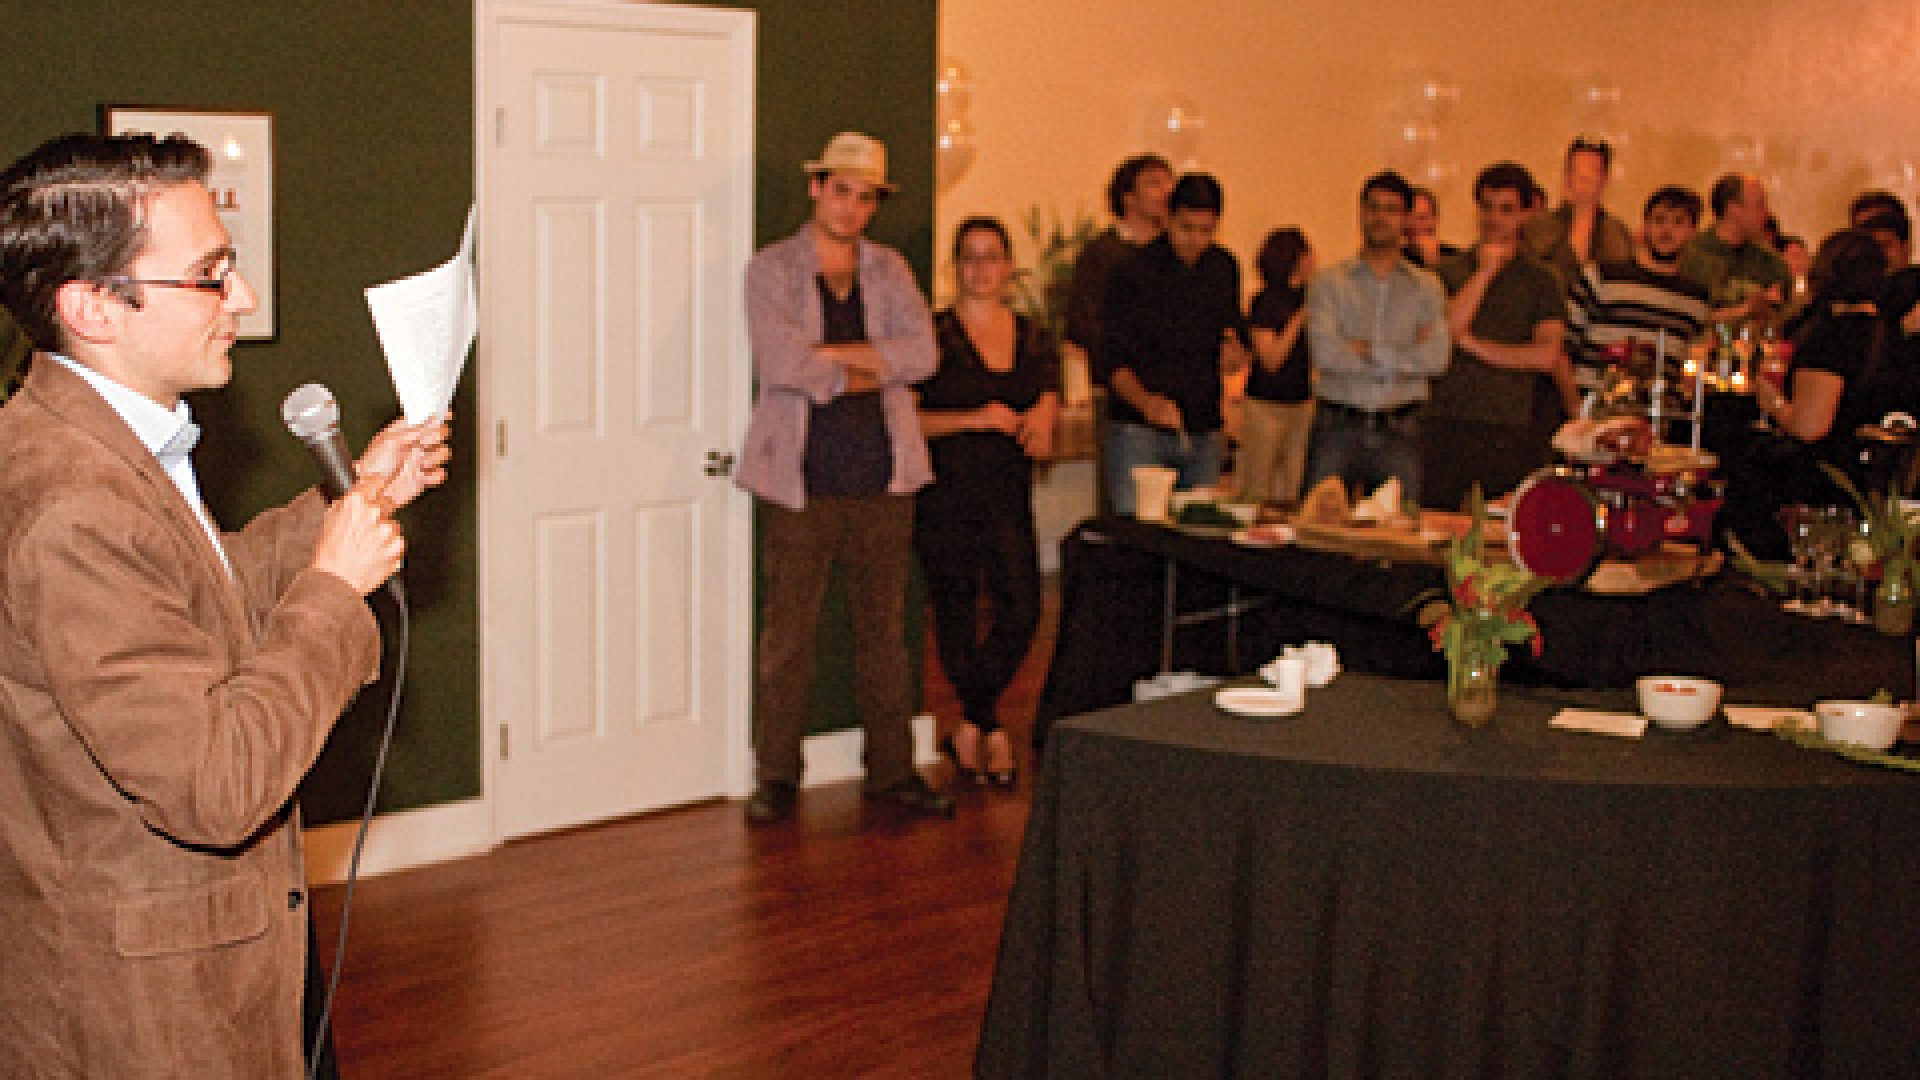 Dan Scholnick of Trinity Ventures speaking at a party at the Dolores Labs space.